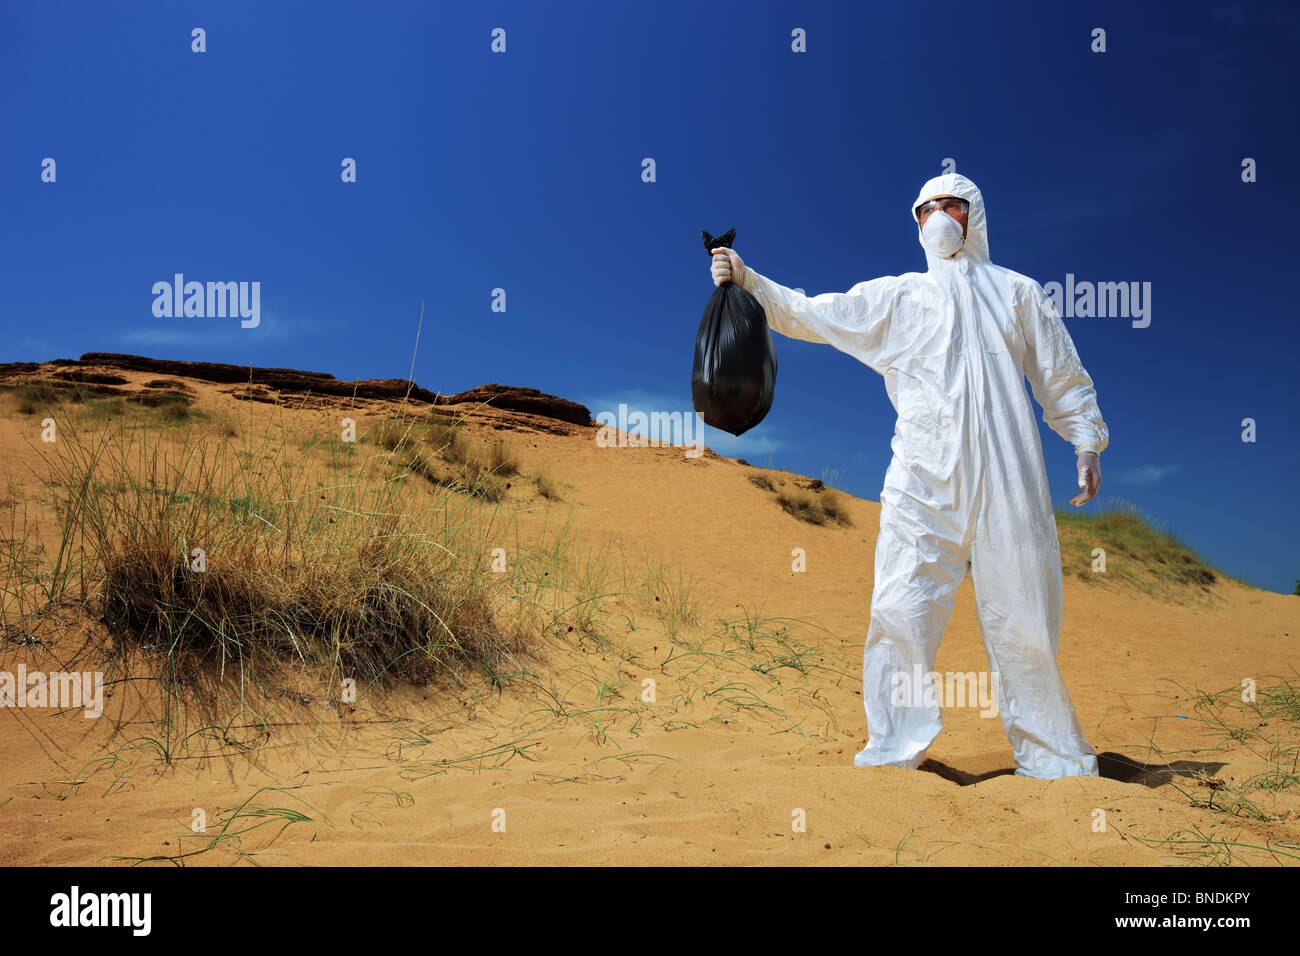 A man in a protective suit holding a waste bag - Stock Image